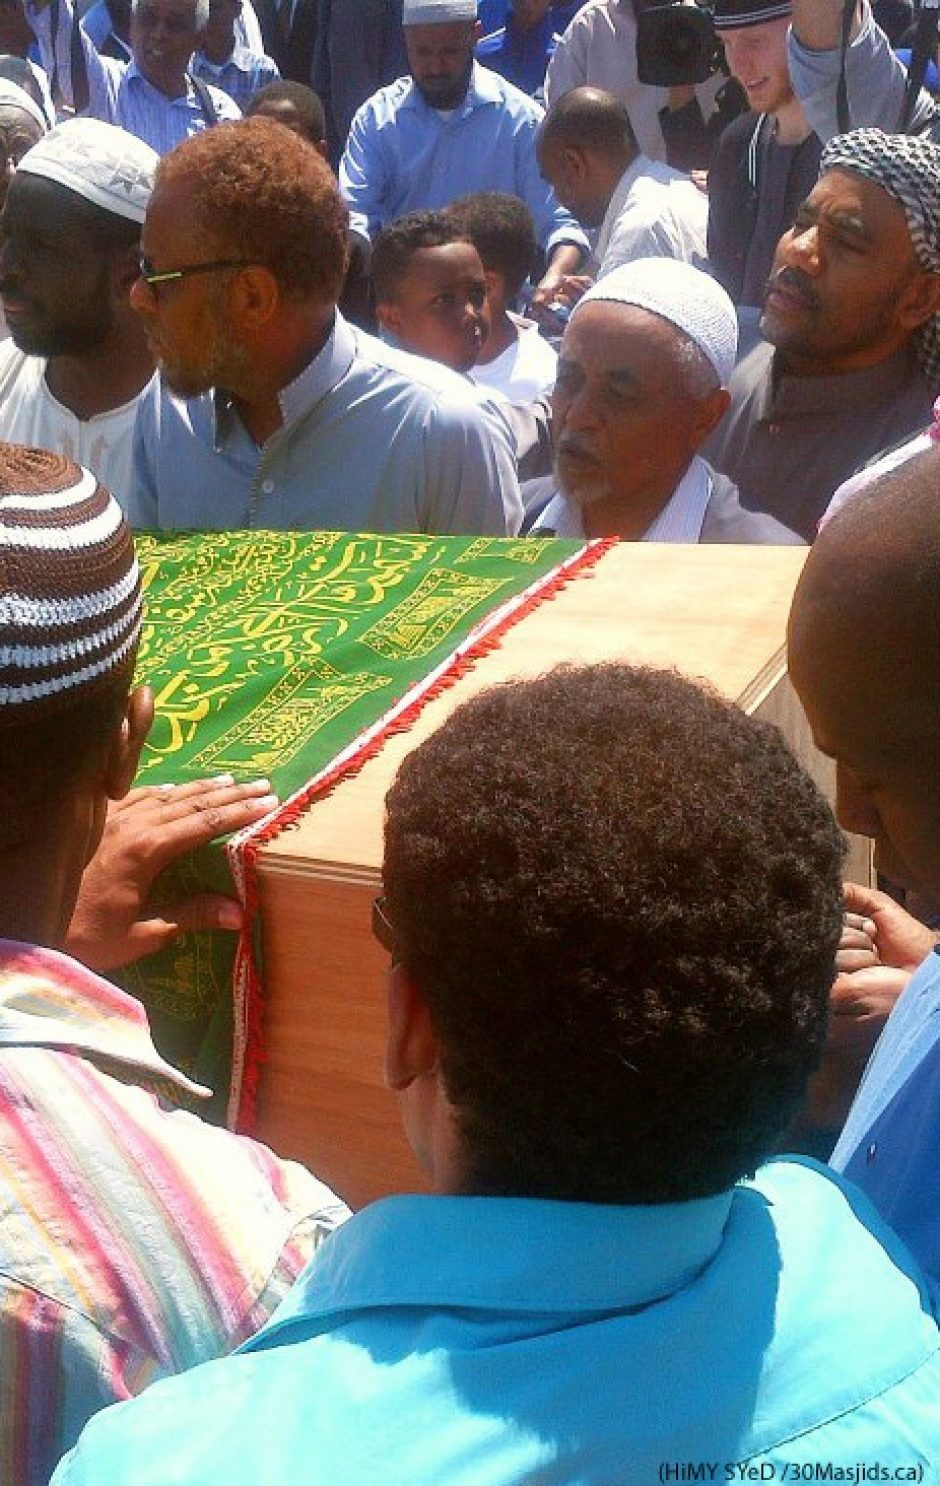 Mourners carry the coffin of a young Somali man killed in Toronto's west end (HiMY SYeD)